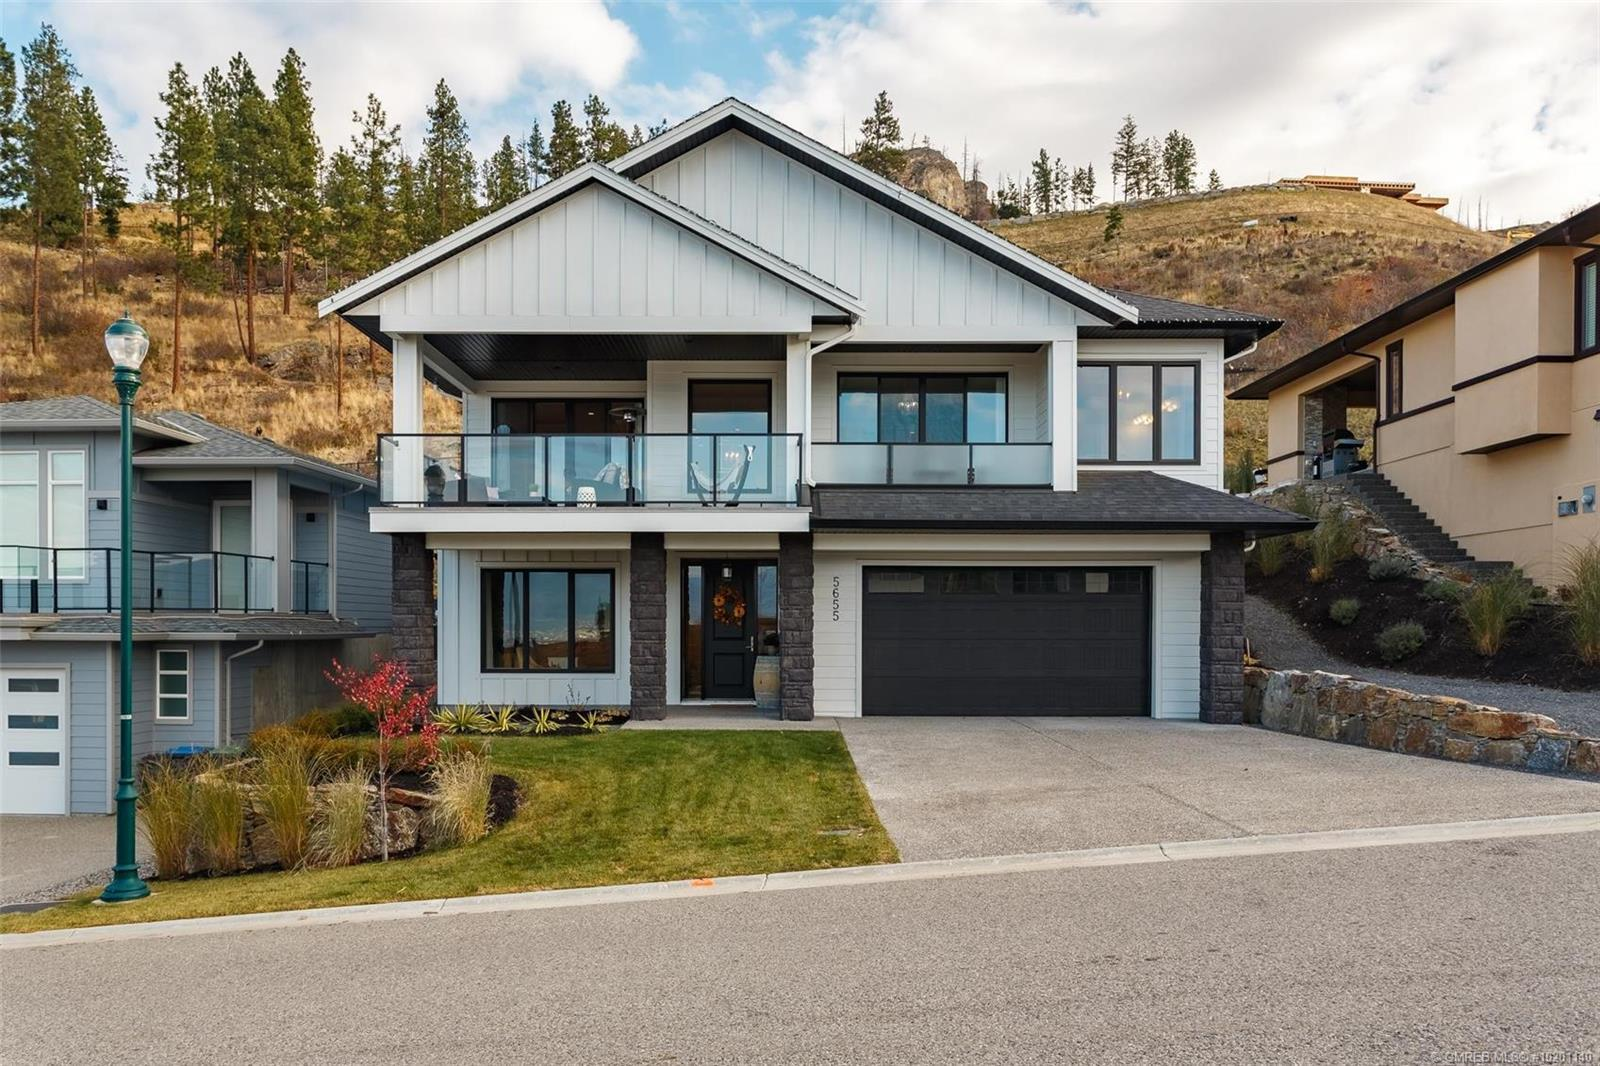 Removed: 5655 Jasper Way, Kelowna, BC - Removed on 2020-04-14 09:03:19